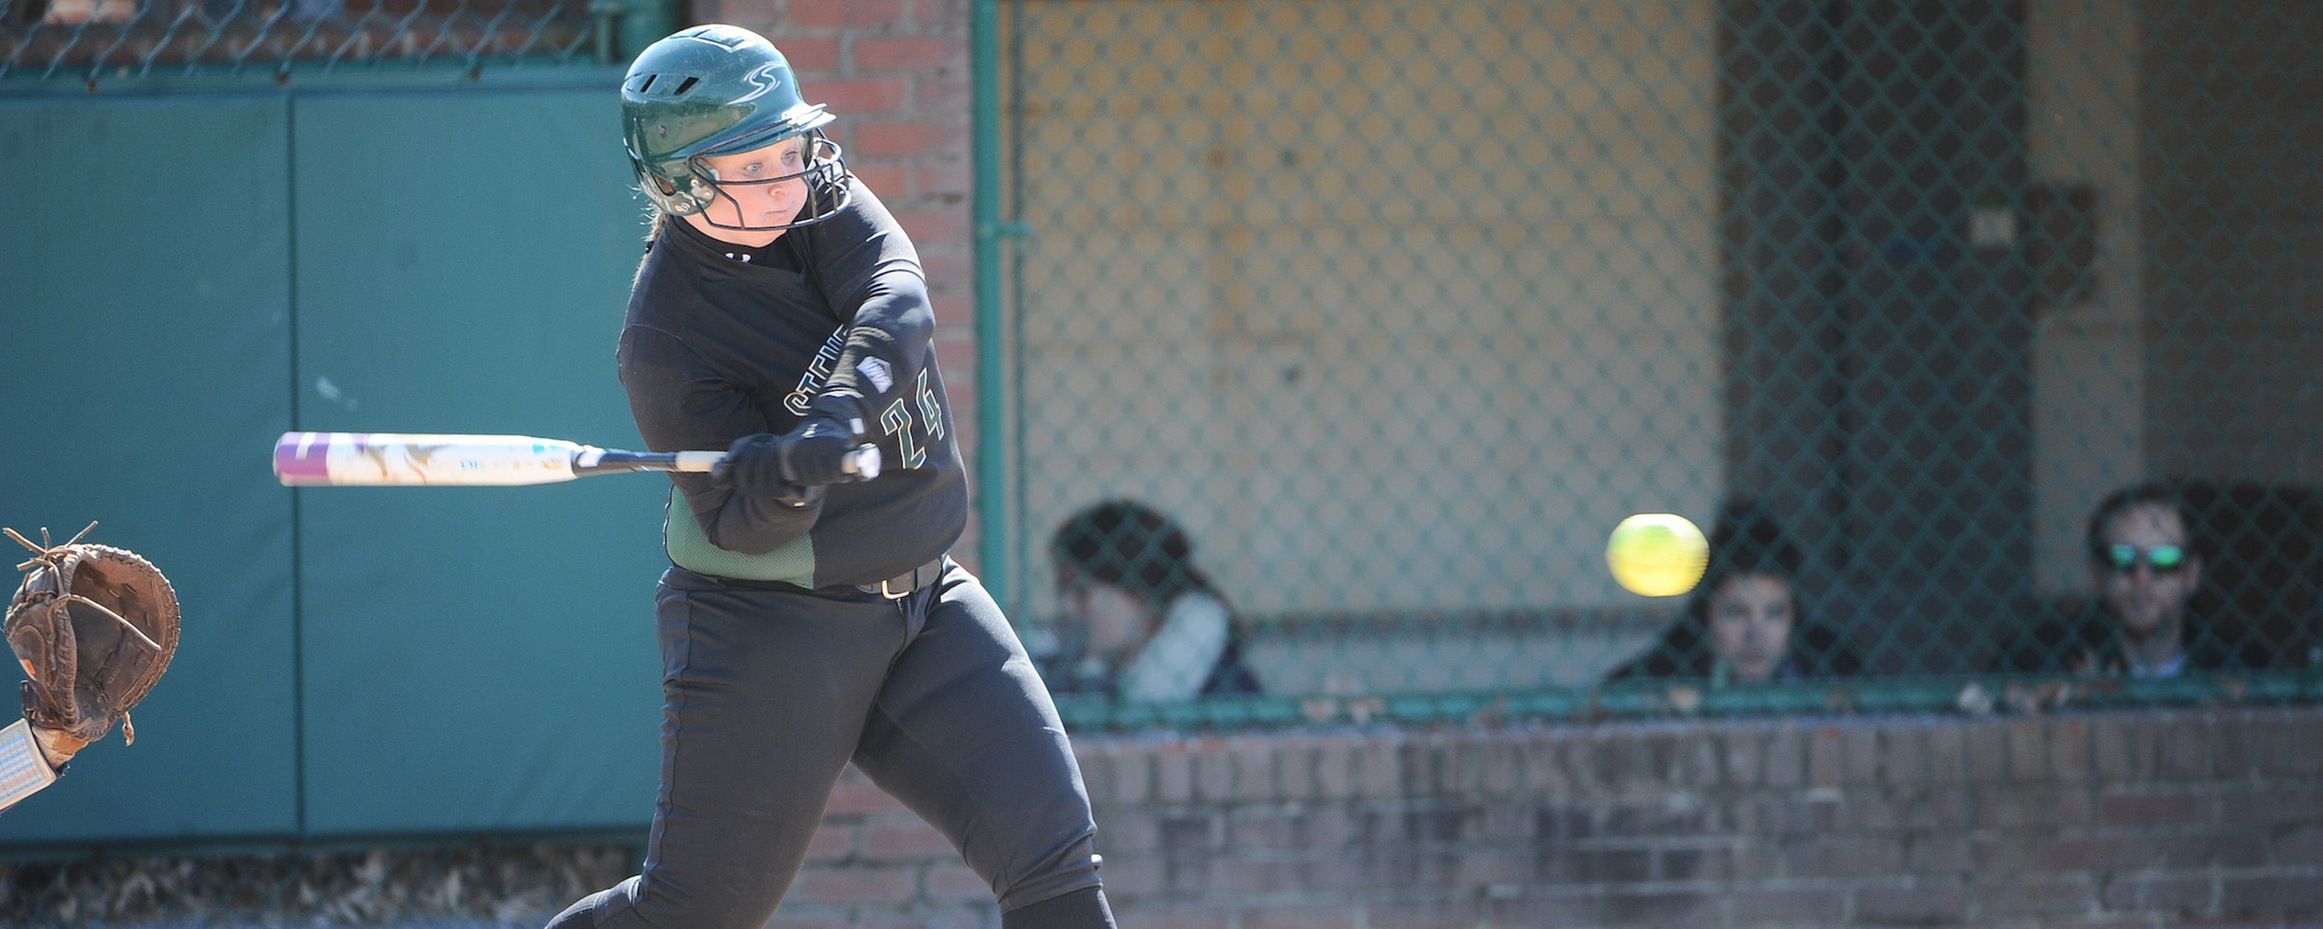 Finnen Records 100th Career Hit as Mustangs Cruise to a Pair of Wins